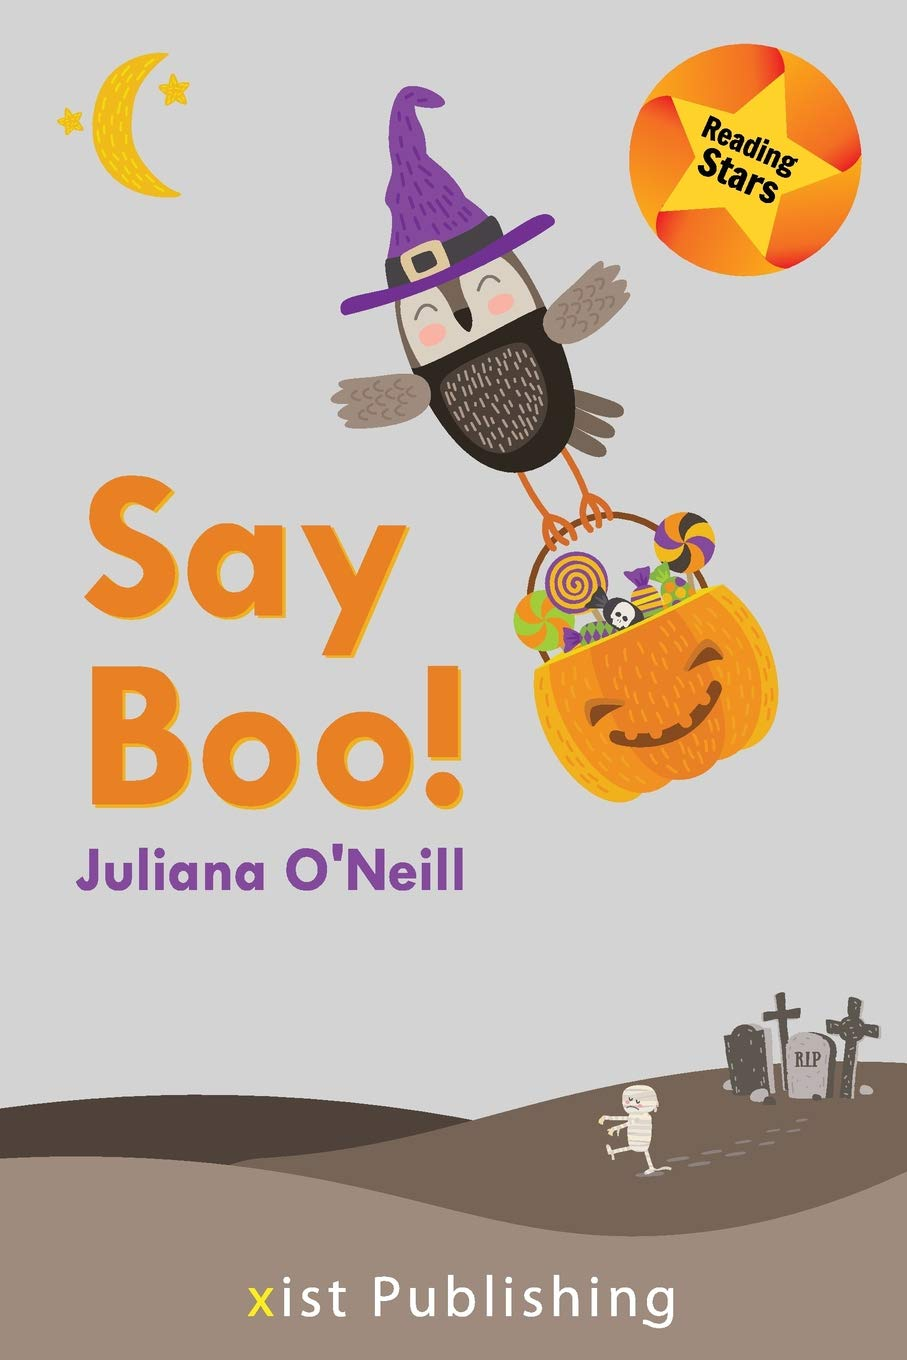 Say Boo! Juliana O'Neill, Mummy, Graves, Moon, Stars, Owl, Trick or Treat, Pumpkins, Candy, Reading Stars, Halloween, Picture Books, Educational, Fun, Cute, Spoopy, Children's Books